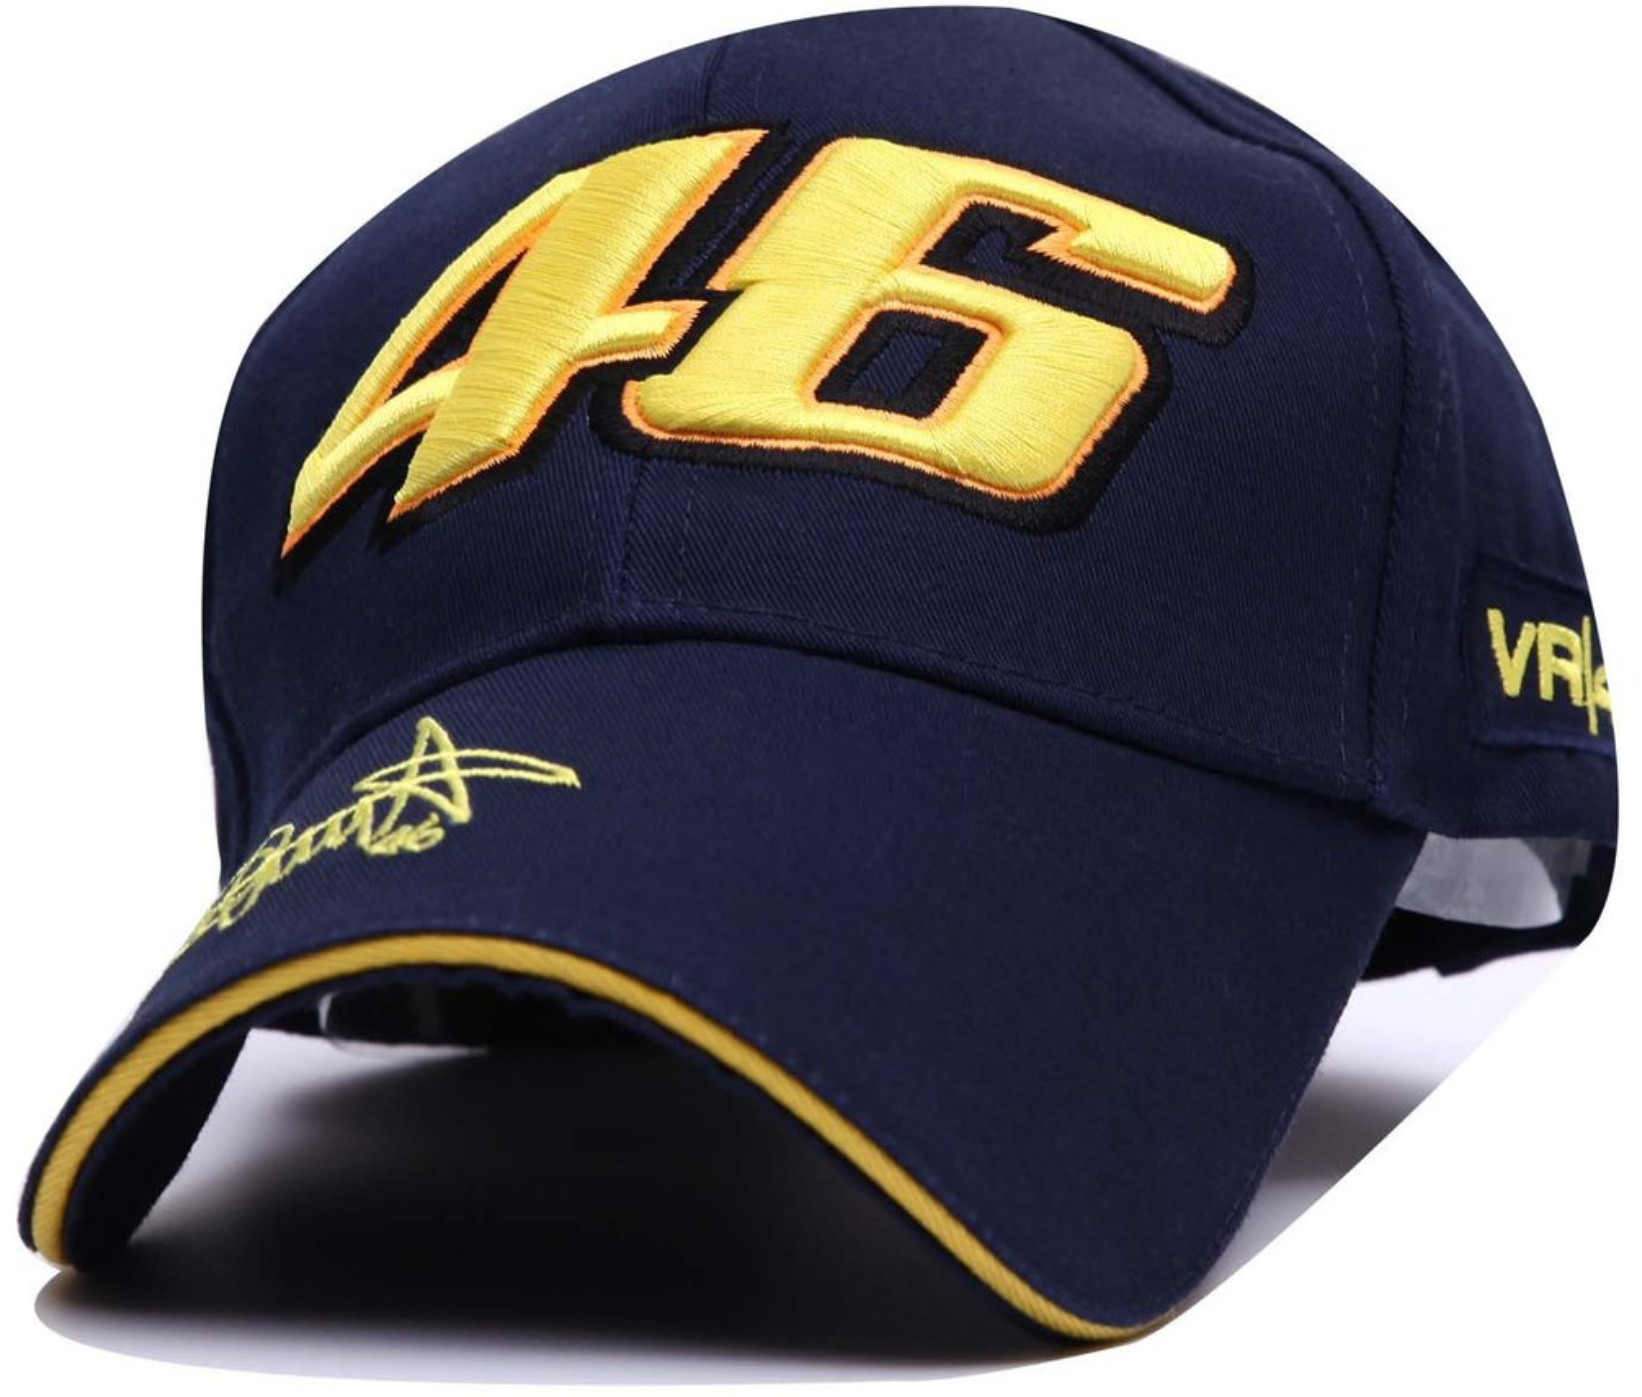 car 46 embroidered racing cap